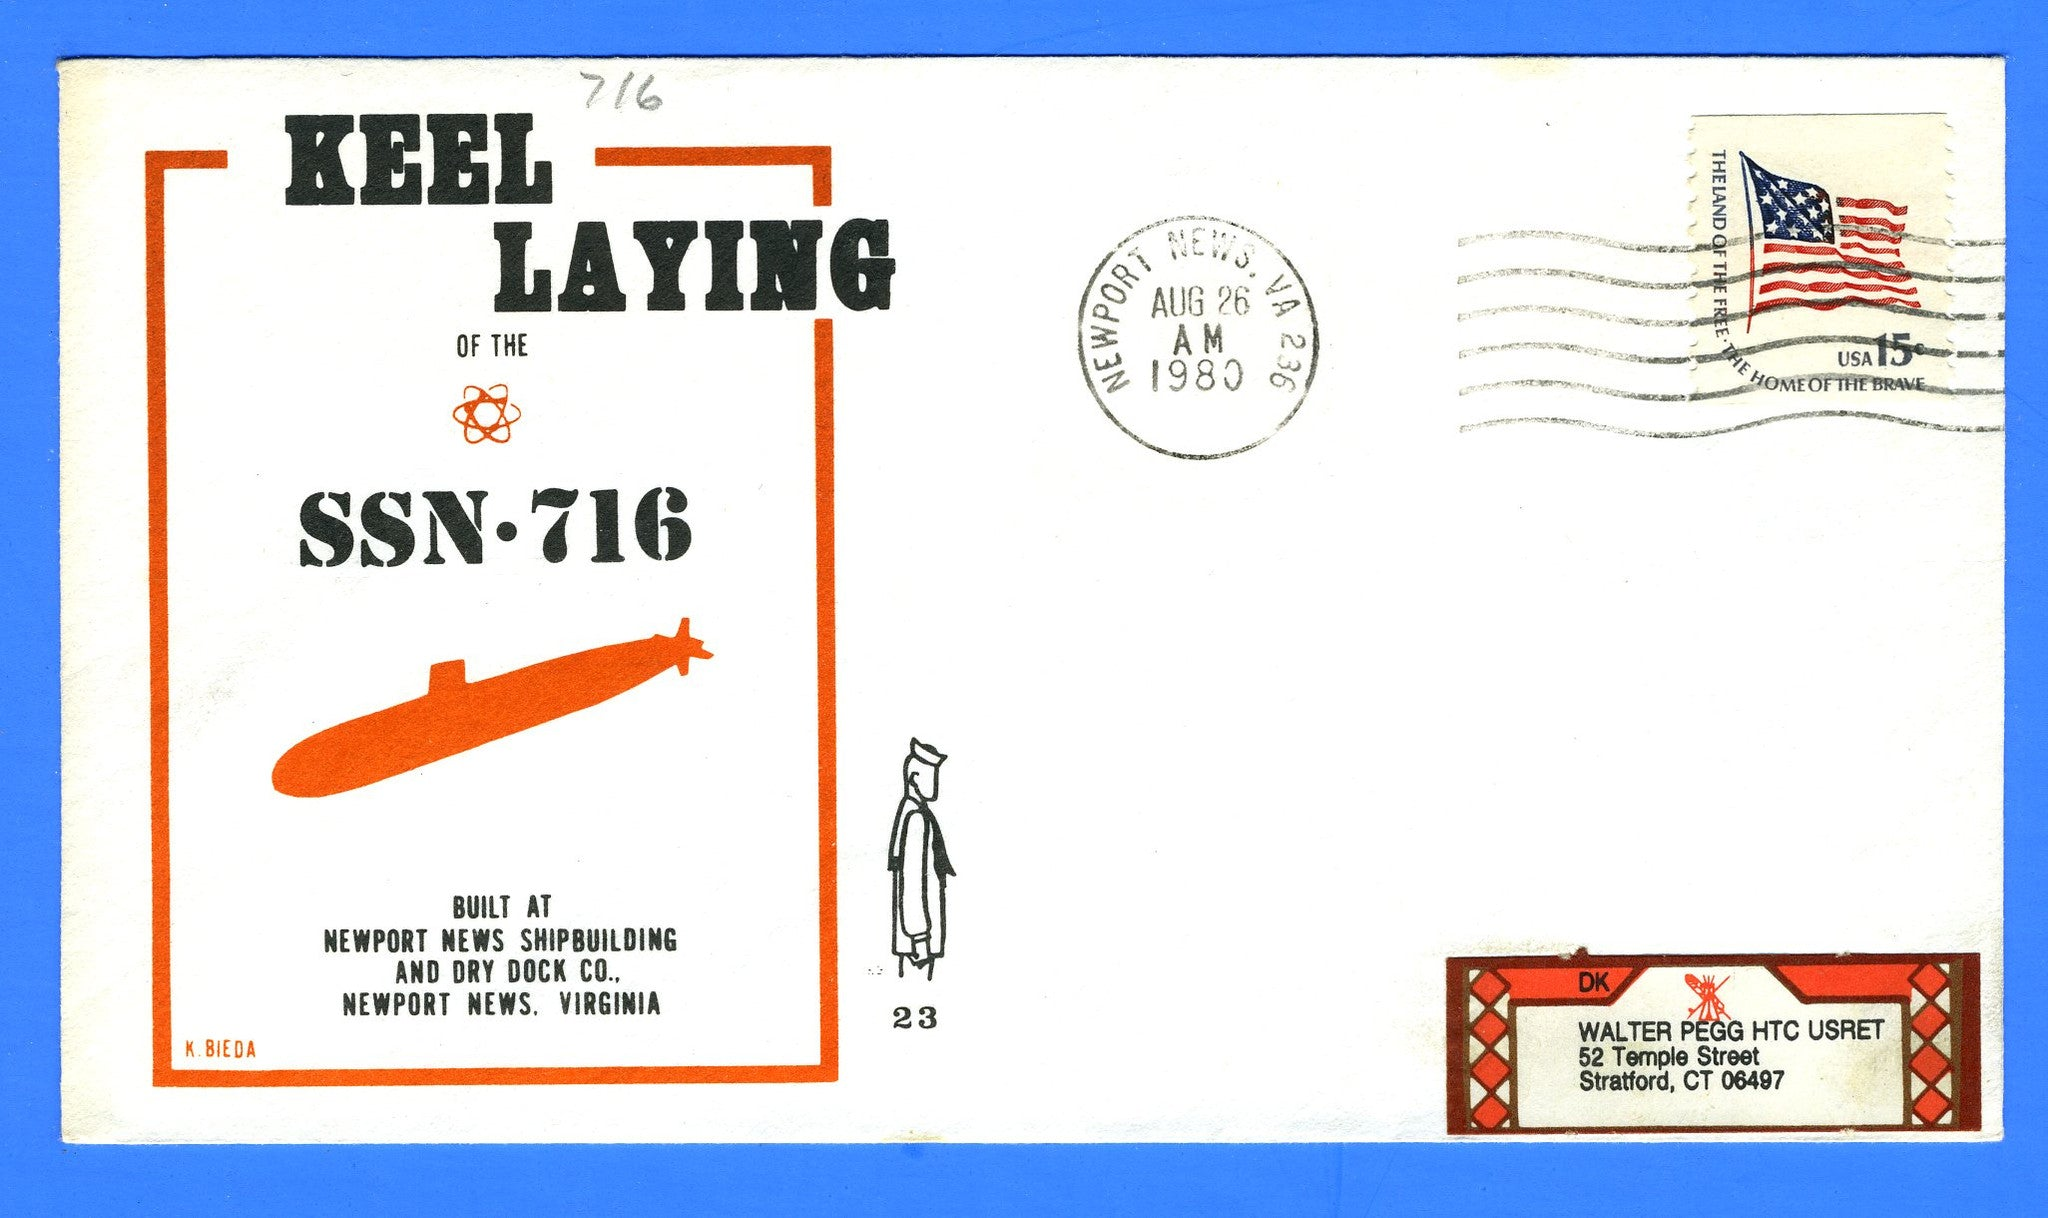 USS Salt Lake City SSN-716 Keel Laying August 26, 1980 - Cachet by Ken Bieda K/R Covers No. 23